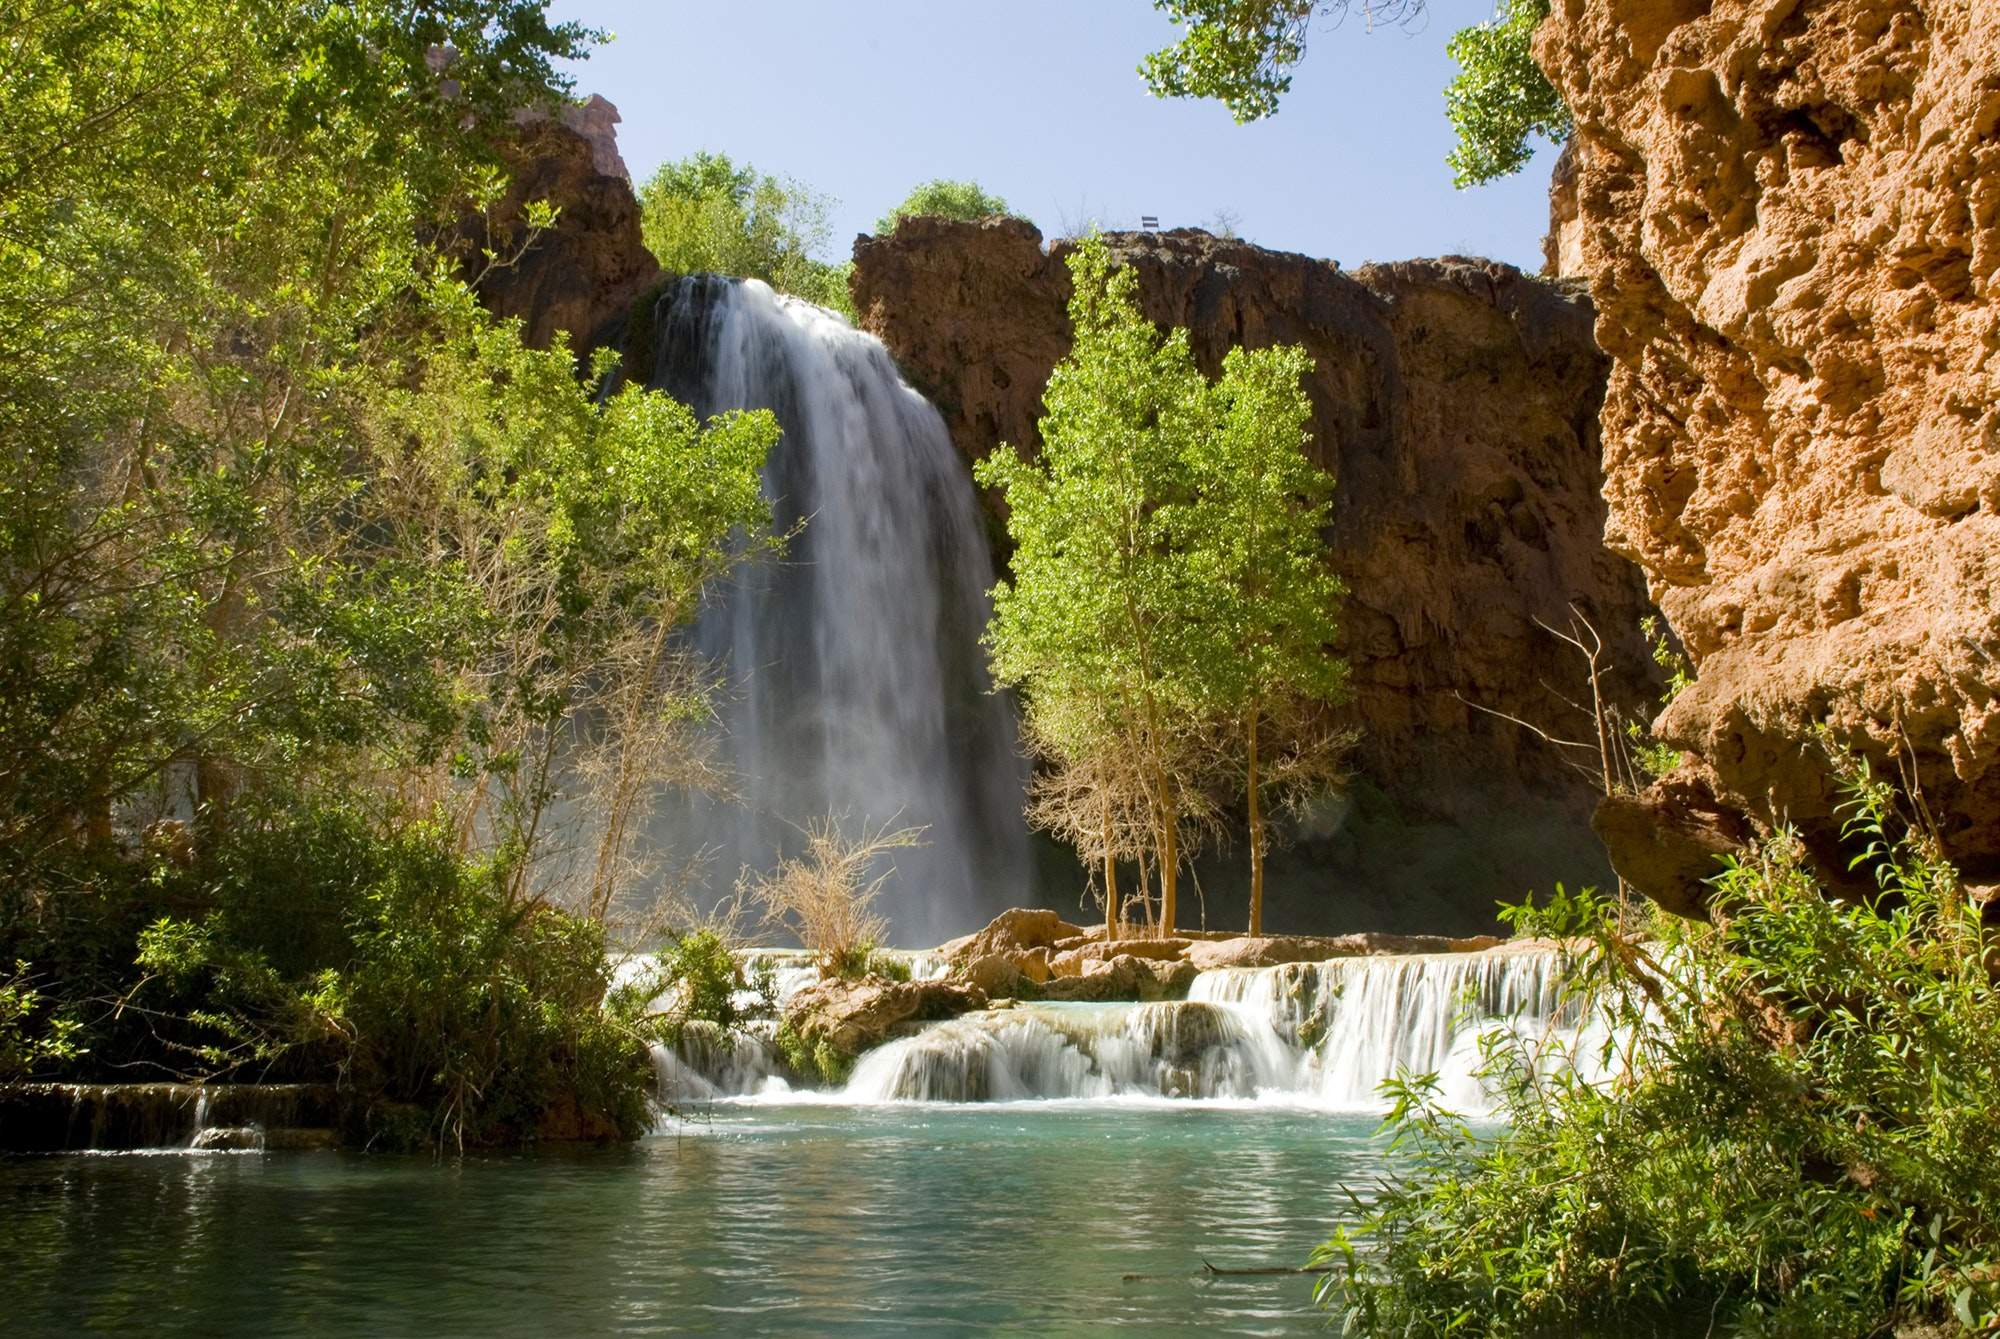 It's a 10-mile hike to reach Havasu Falls and its nearby campground.